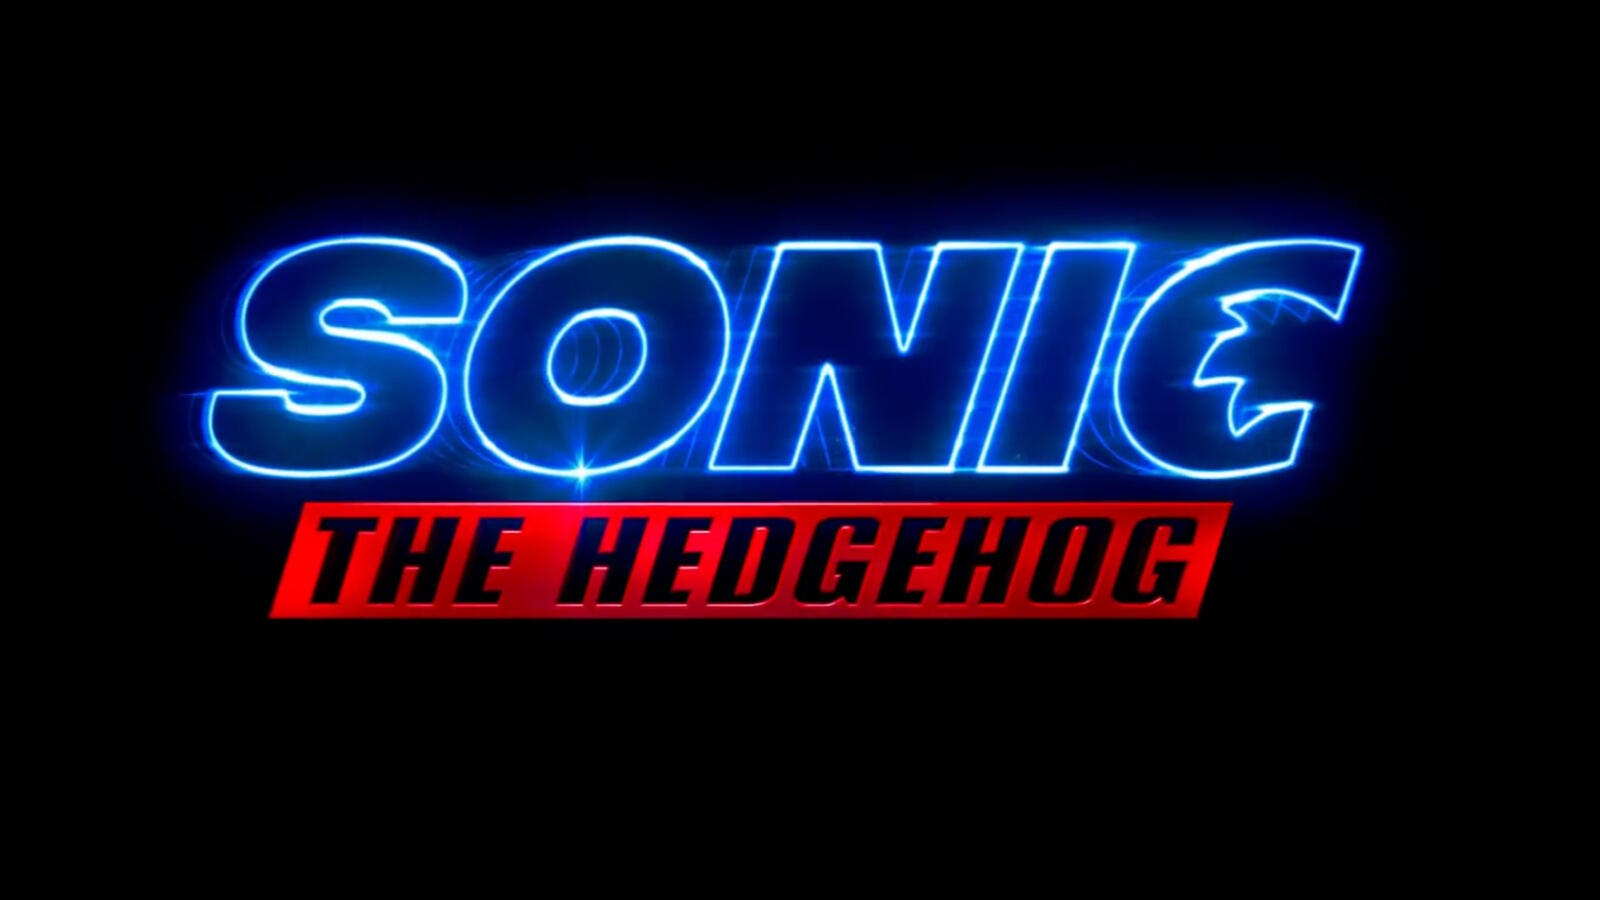 Sonic the Hedgehog' Movie New Trailer Released | Al Bawaba